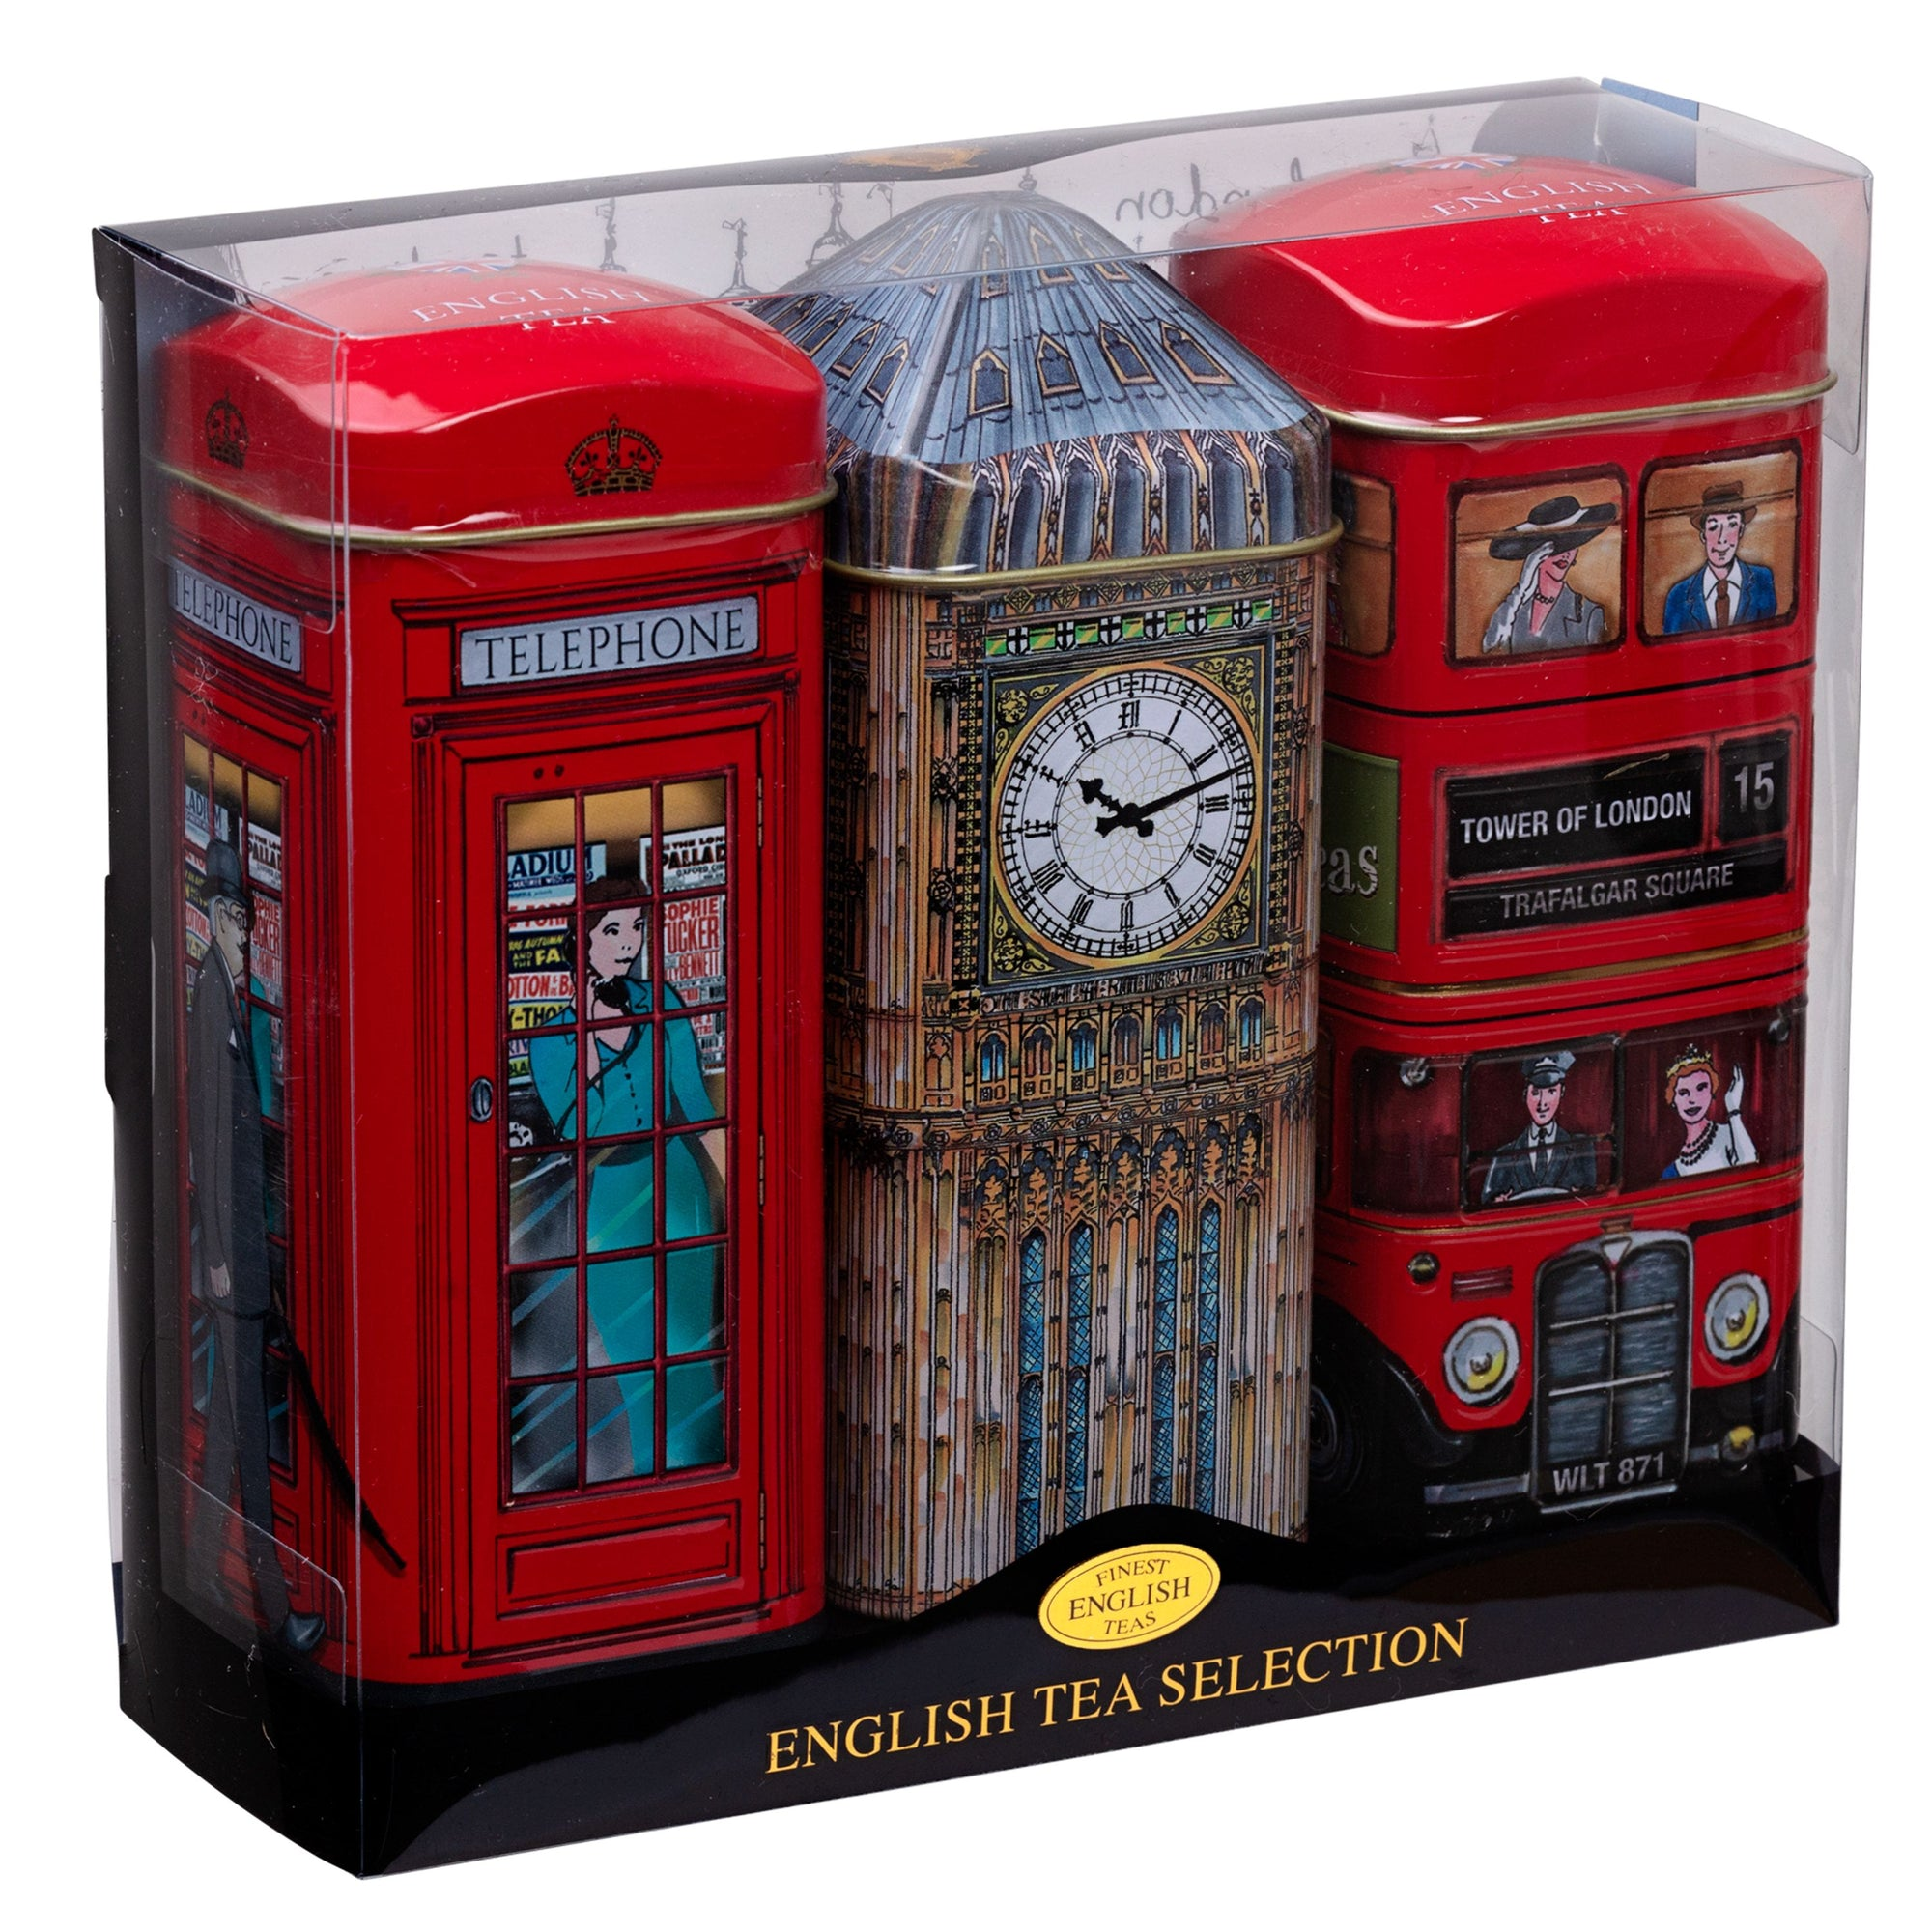 Heritage Tea Selection Triple Tea Tins of 14 Gift Pack Big Ben Black Tea New English Teas